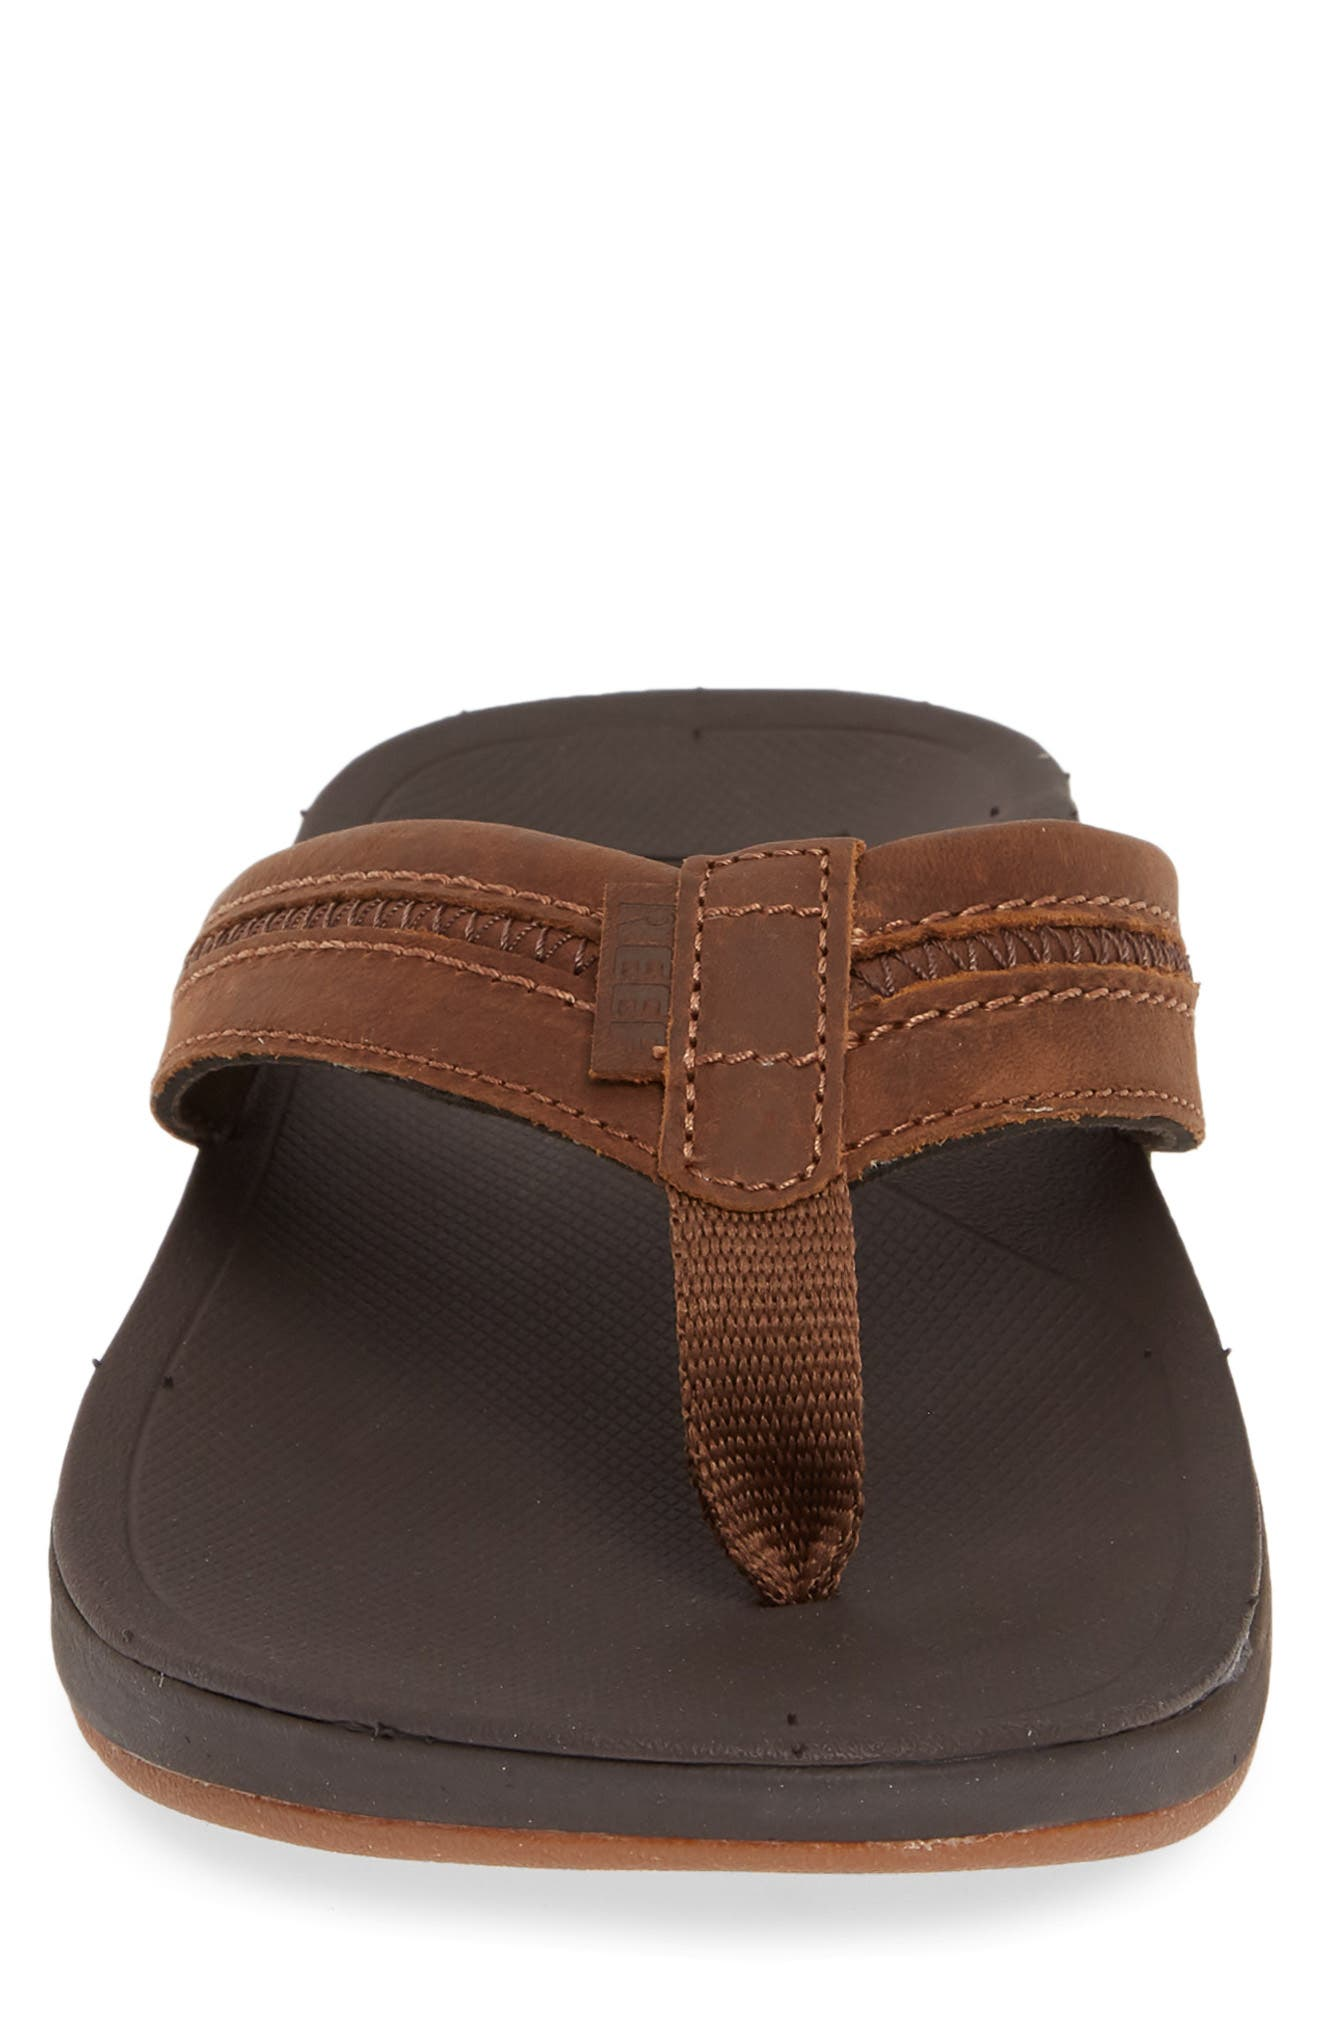 REEF, Ortho Bounce Coast Flip Flop, Alternate thumbnail 4, color, BROWN